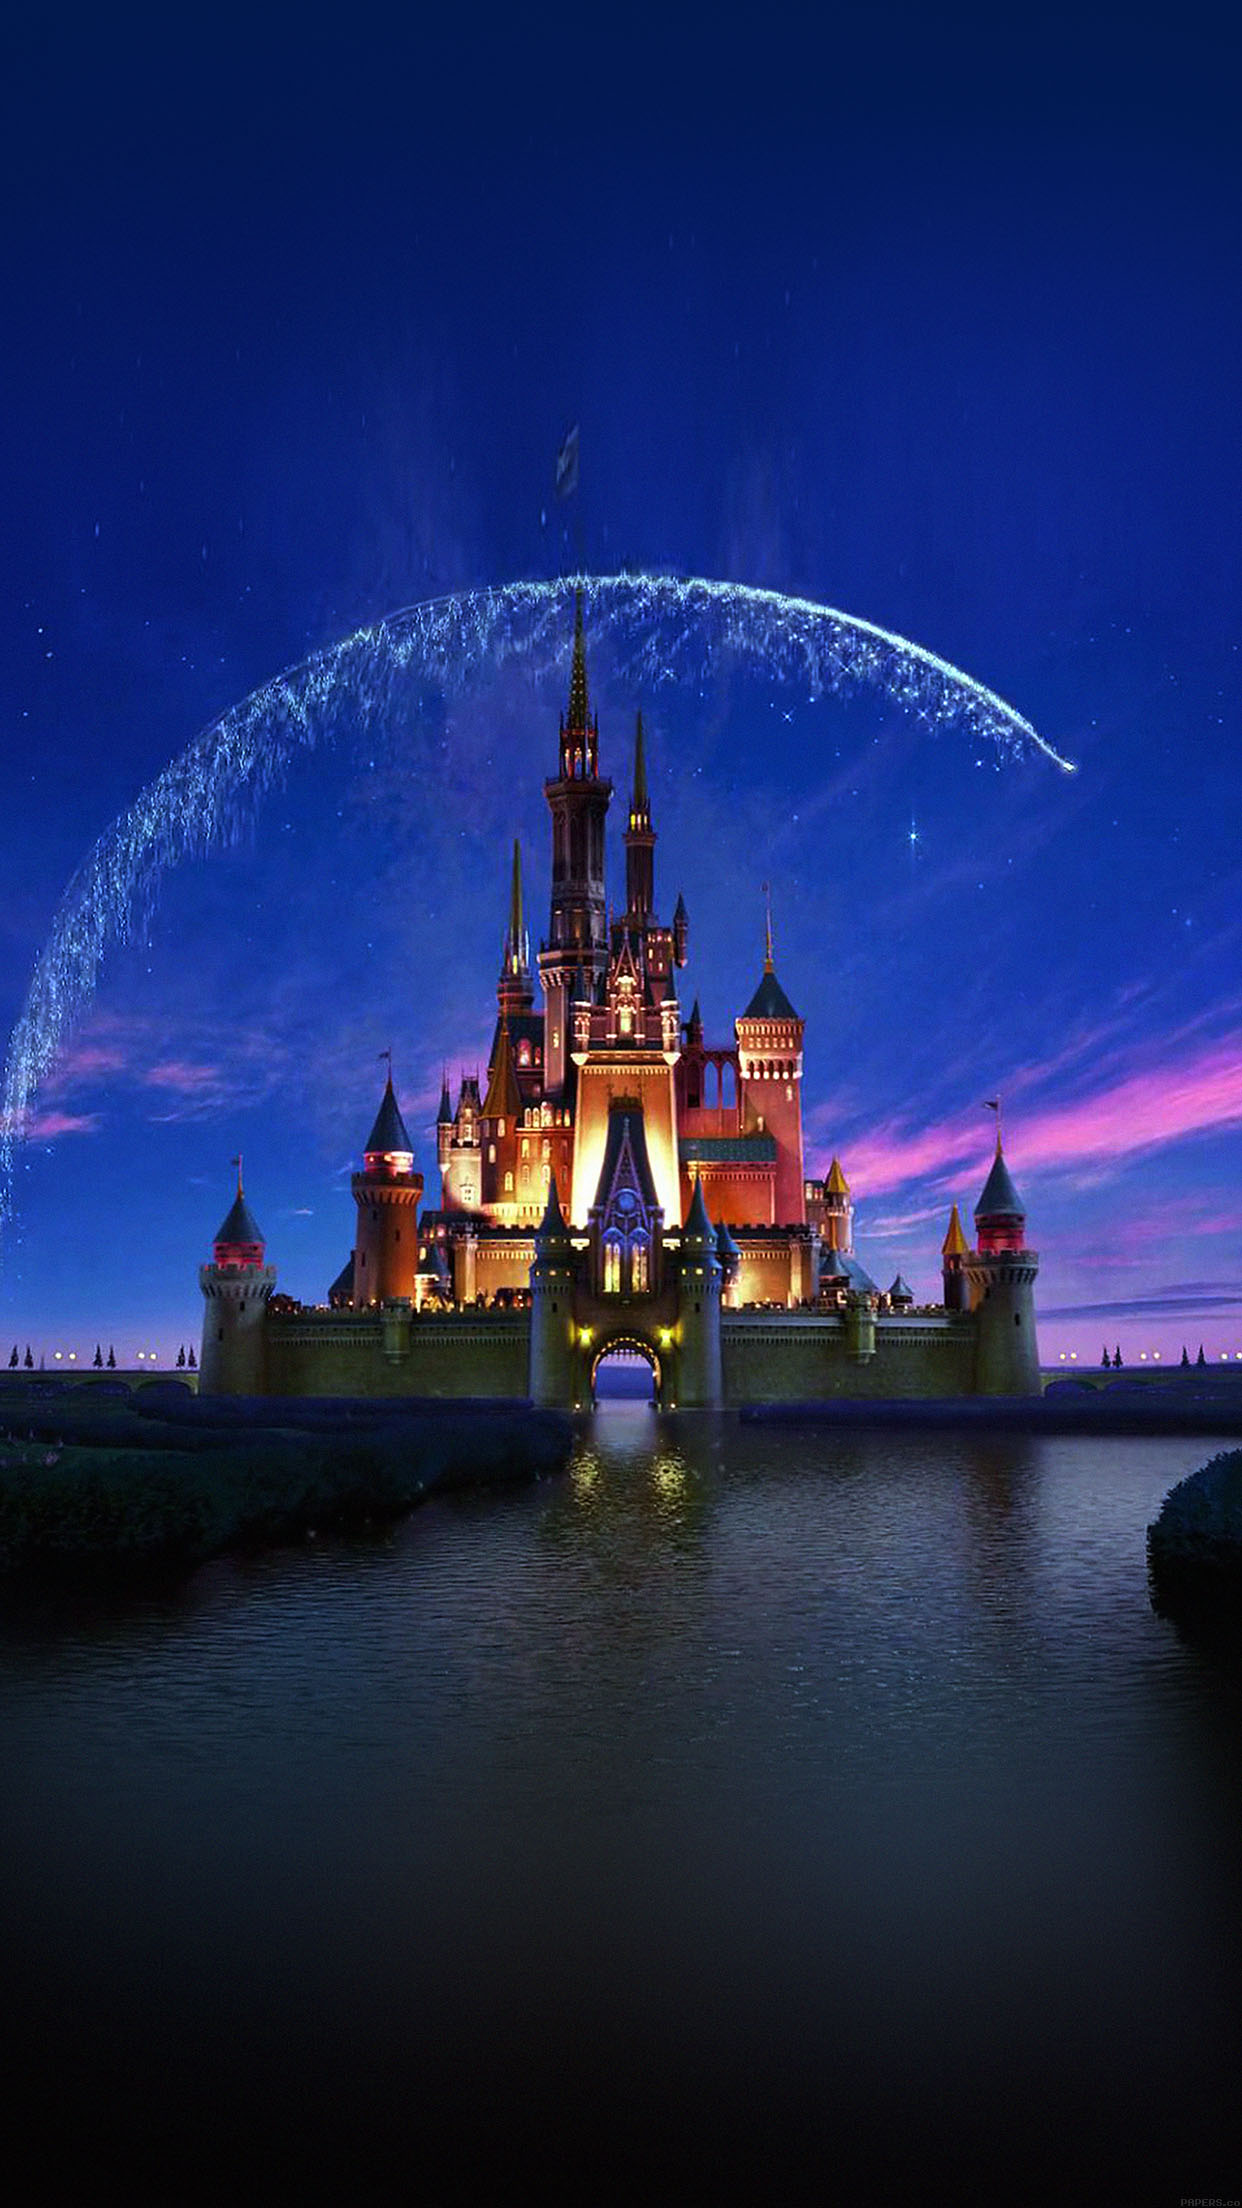 ac76 wallpaper disney castle artwork illust sky